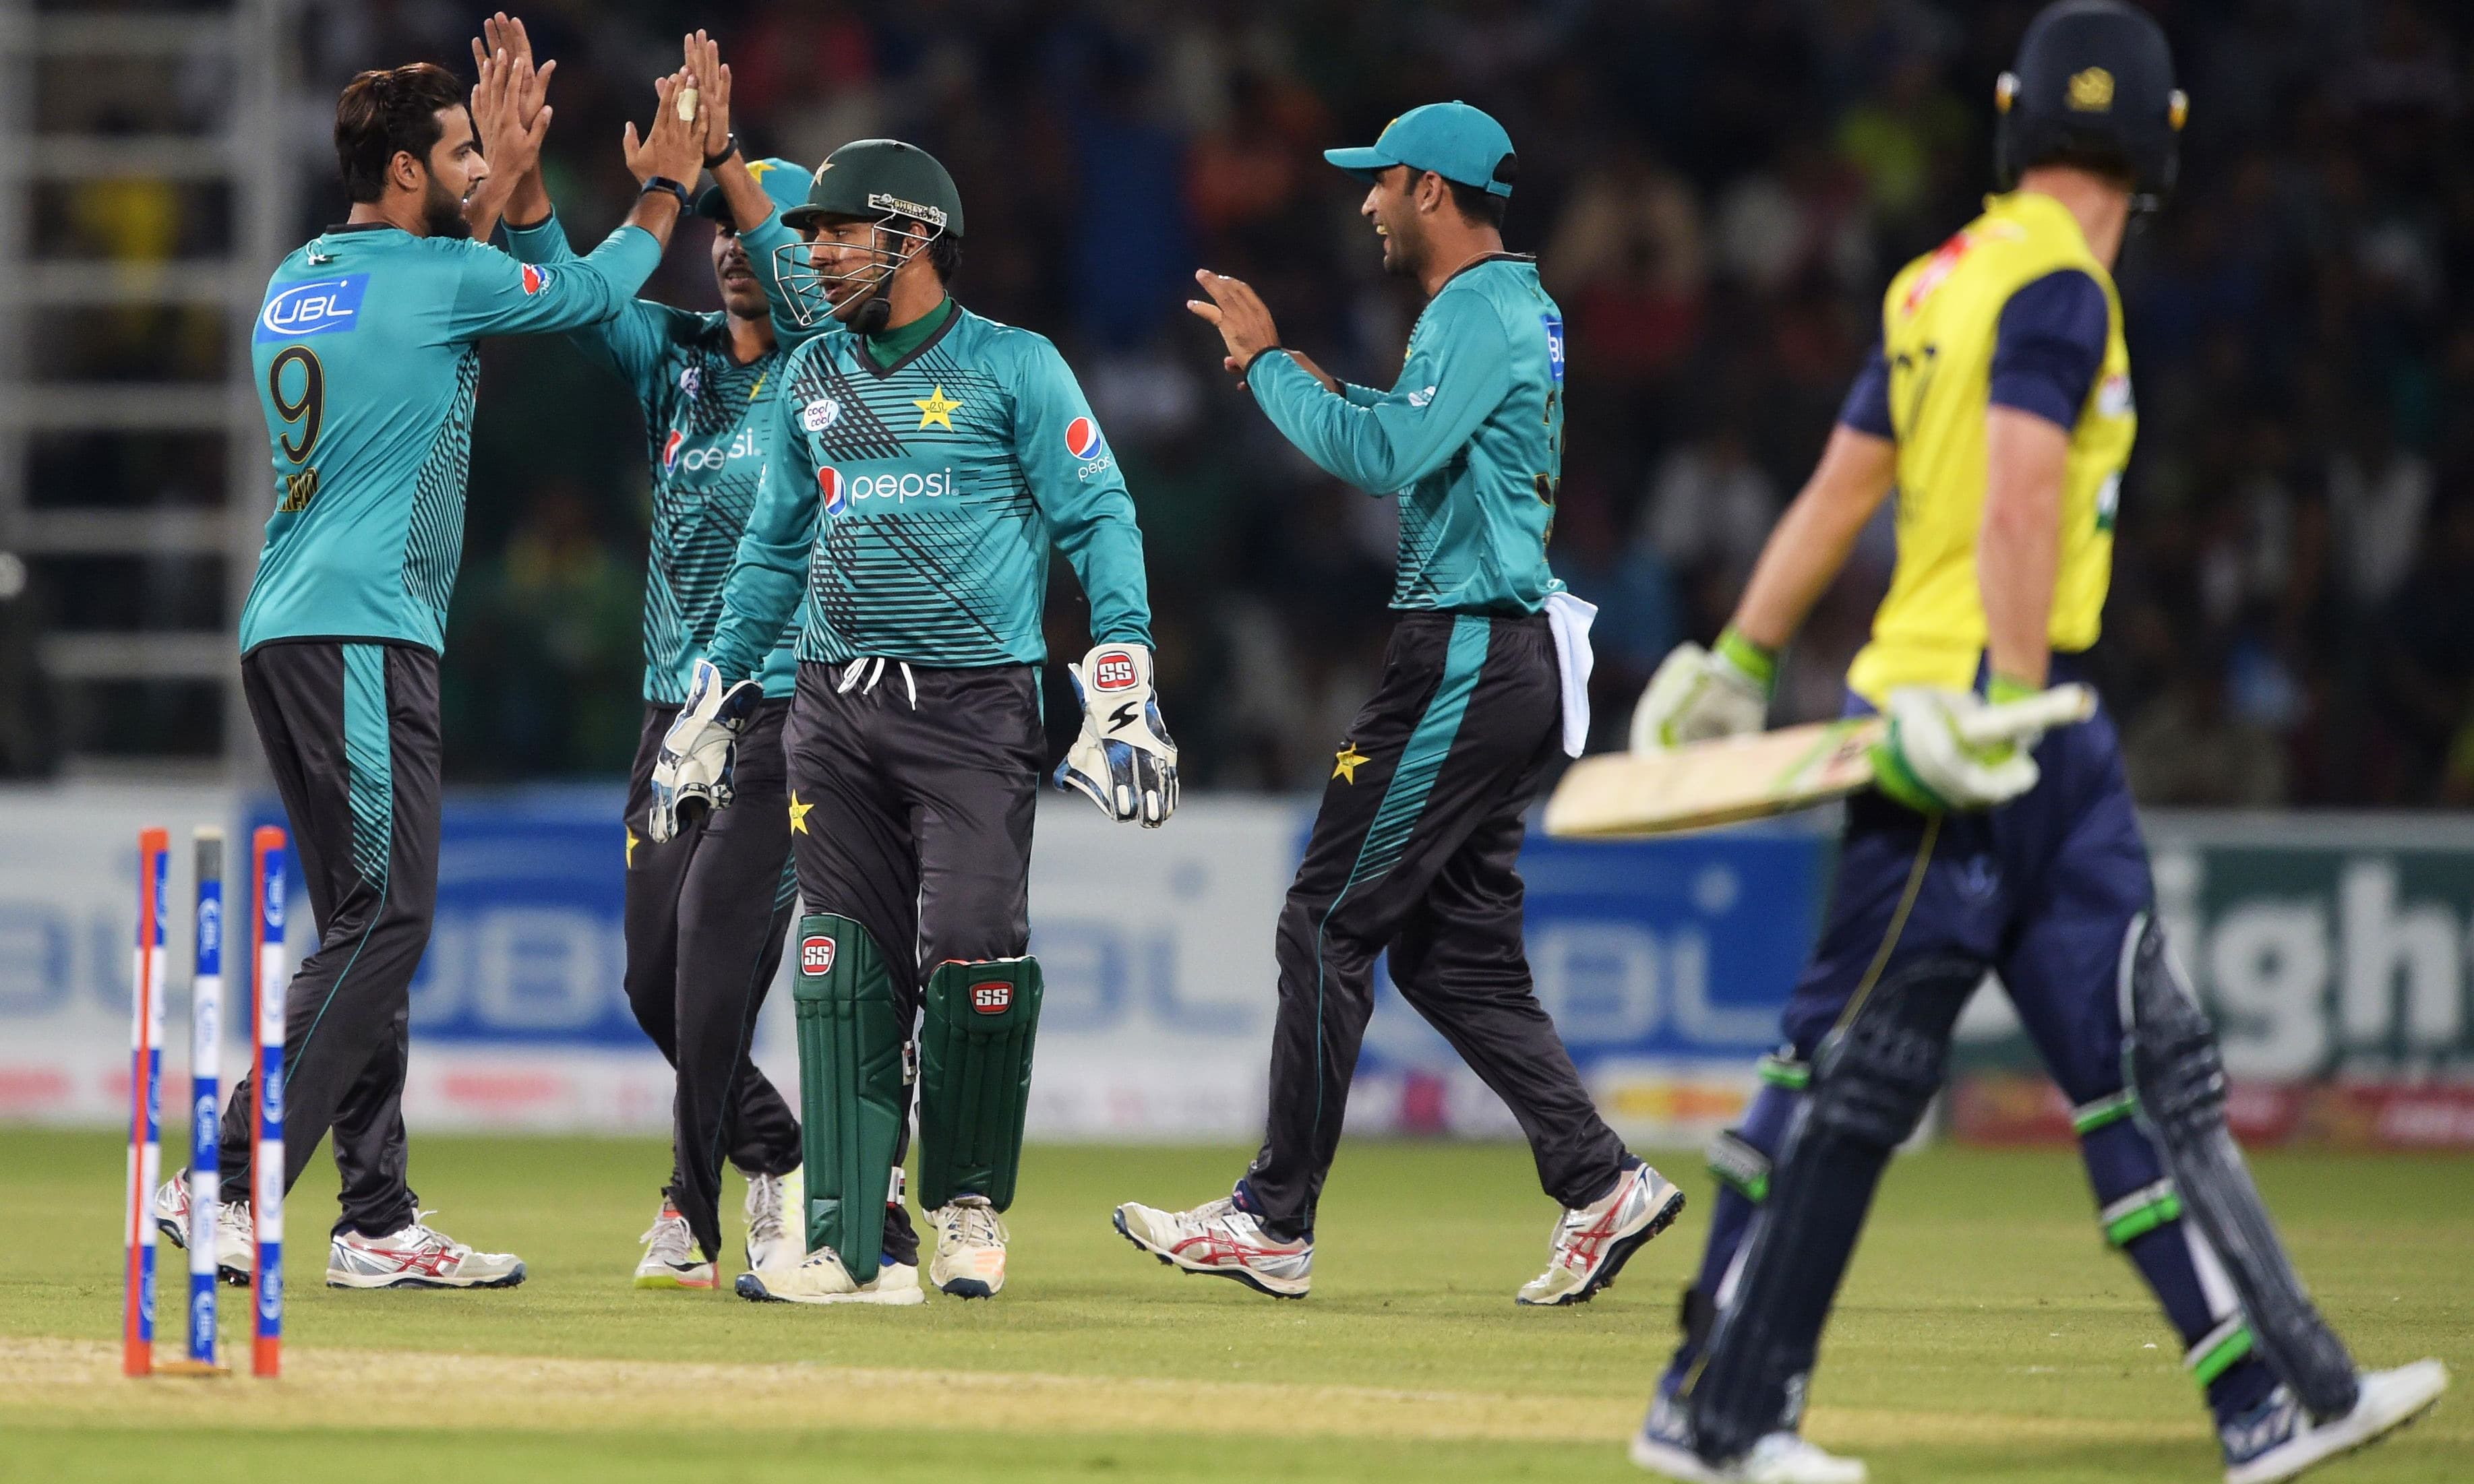 Pakistani spinner Imad Wasim (L) celebrates with teammates after taking the wicket of World XI batsman Tim Paine (R). — AFP